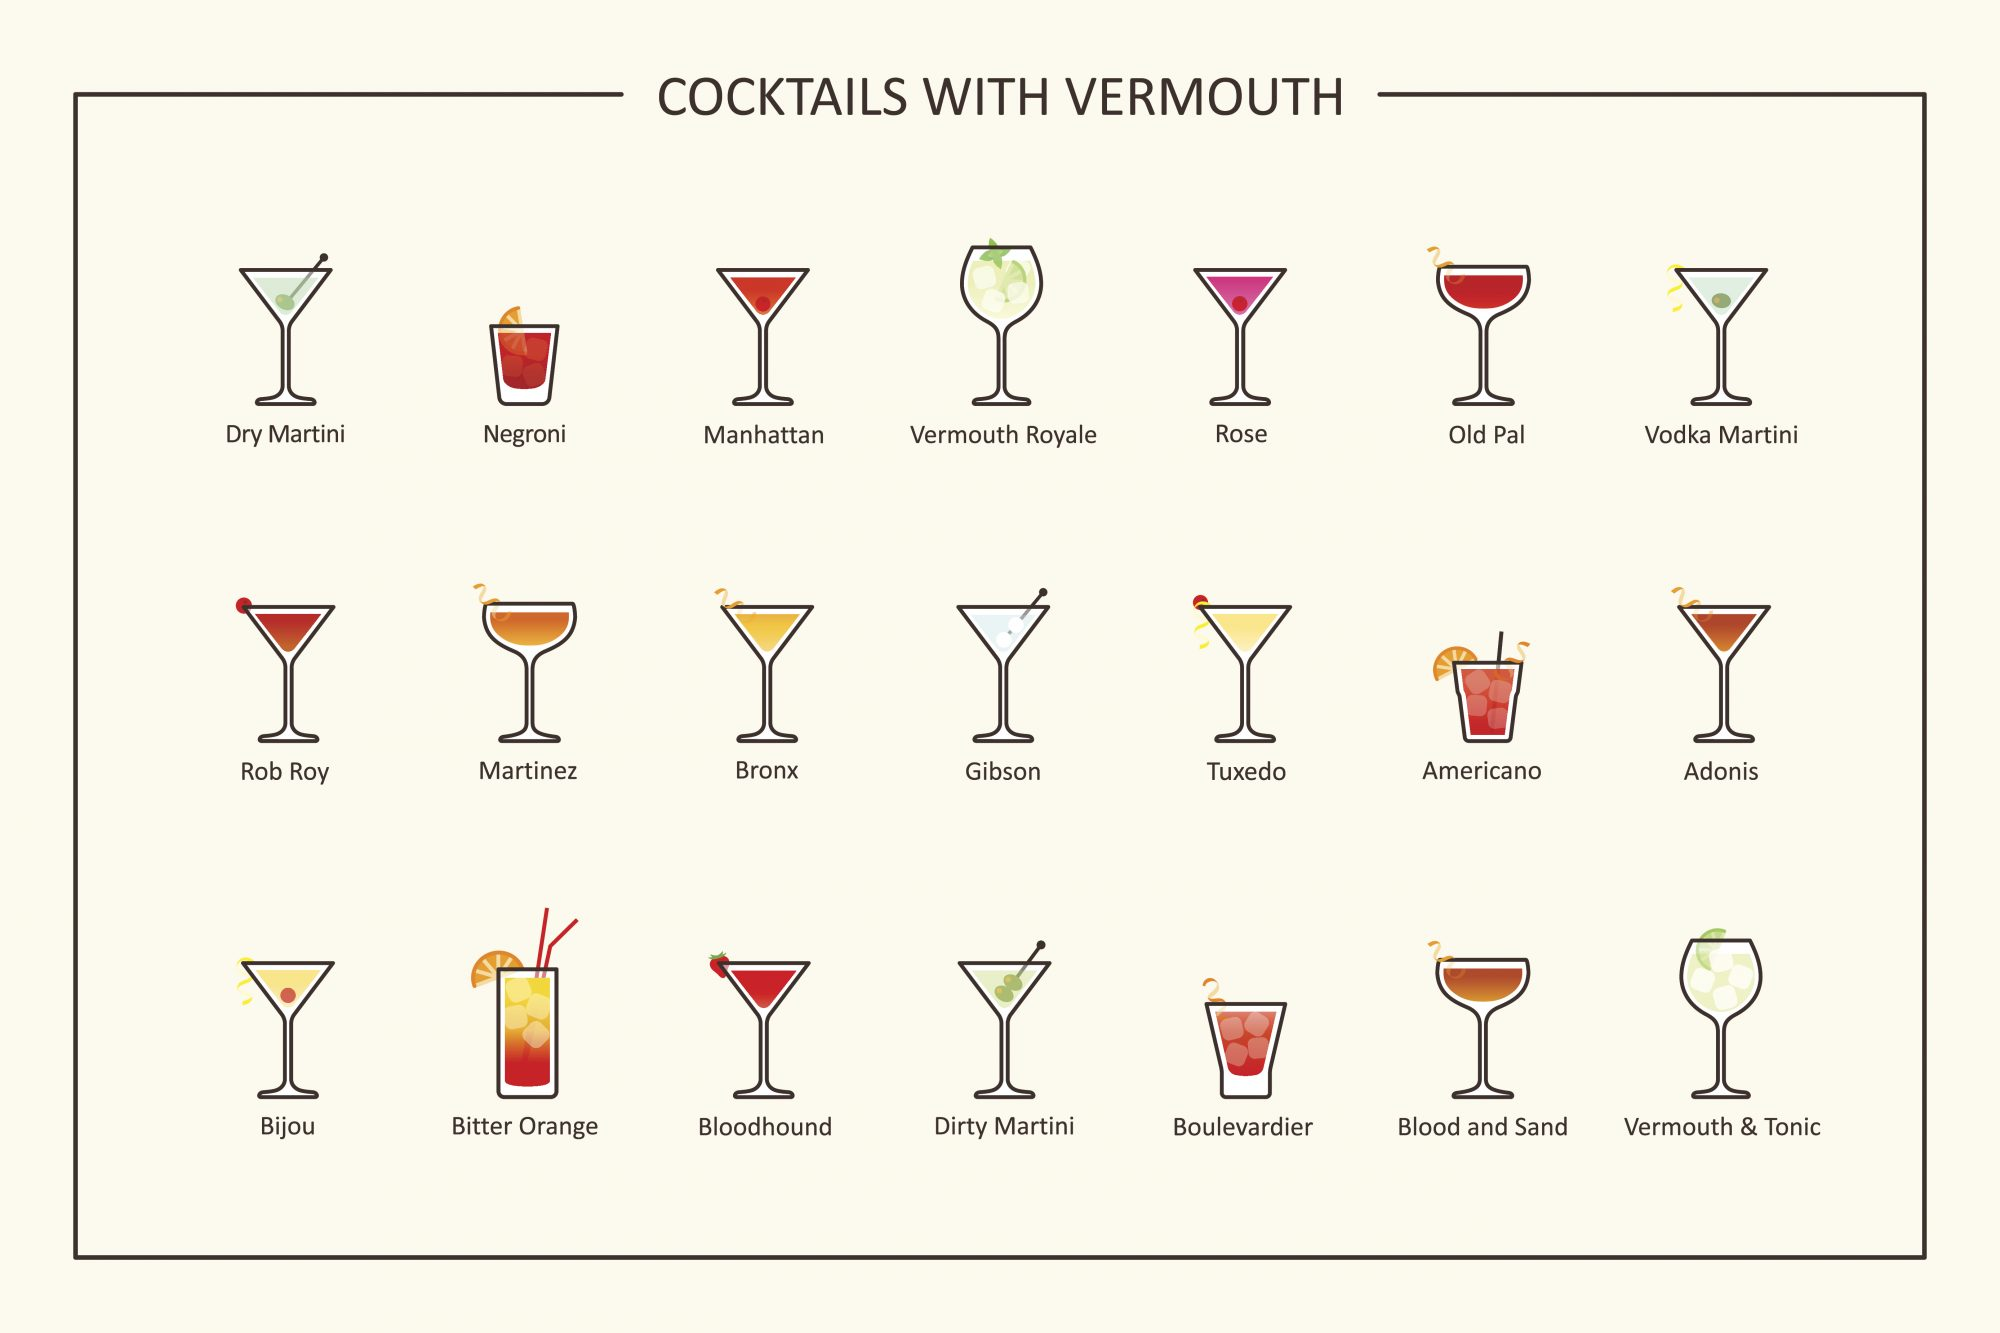 Vermouth Cocktails Getty 8/20/19